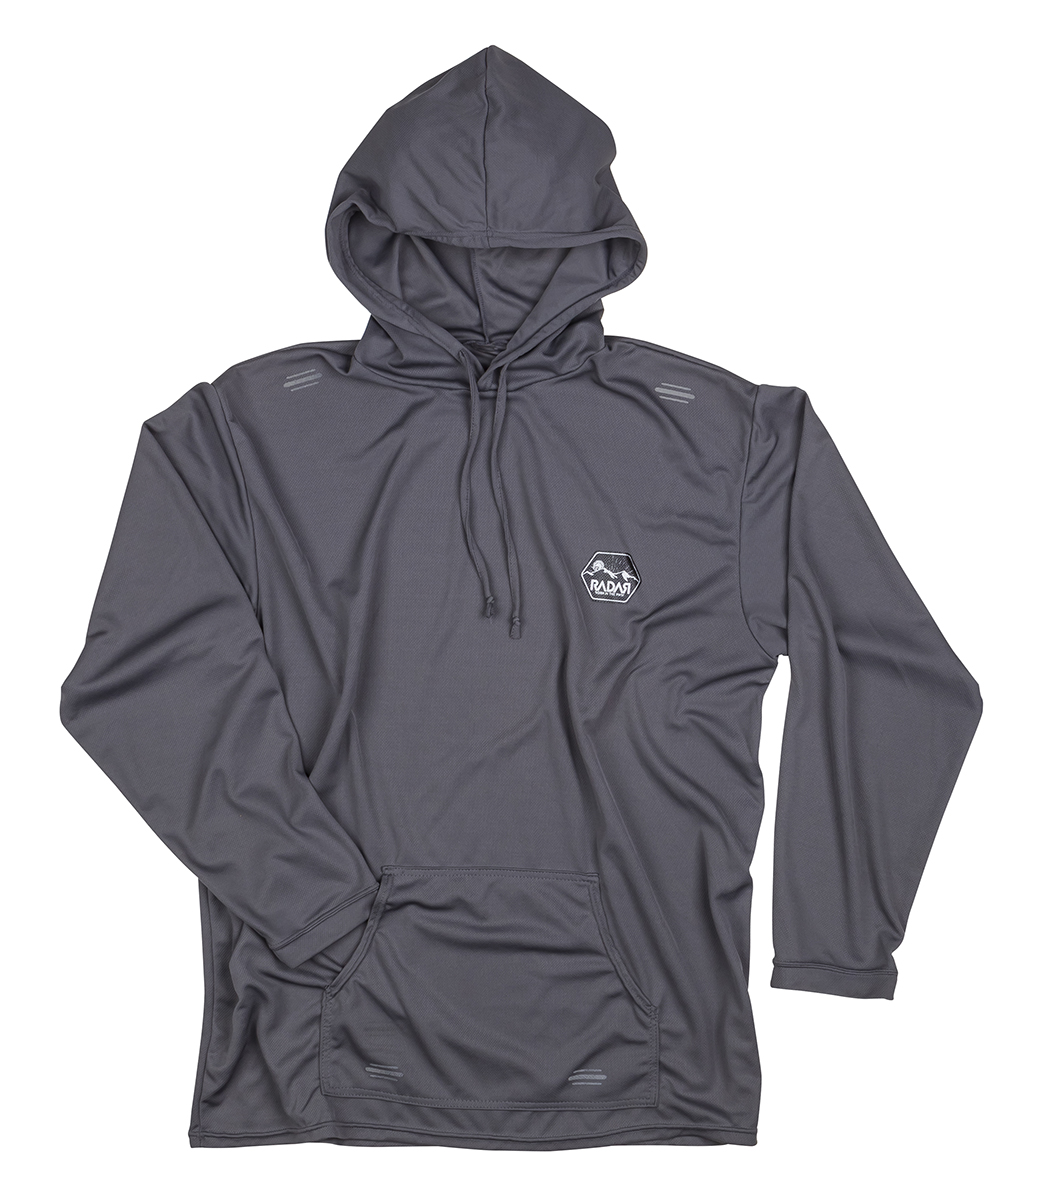 UV SOLAR BARRIER HOODIE - COOL GREY RADAR 2017